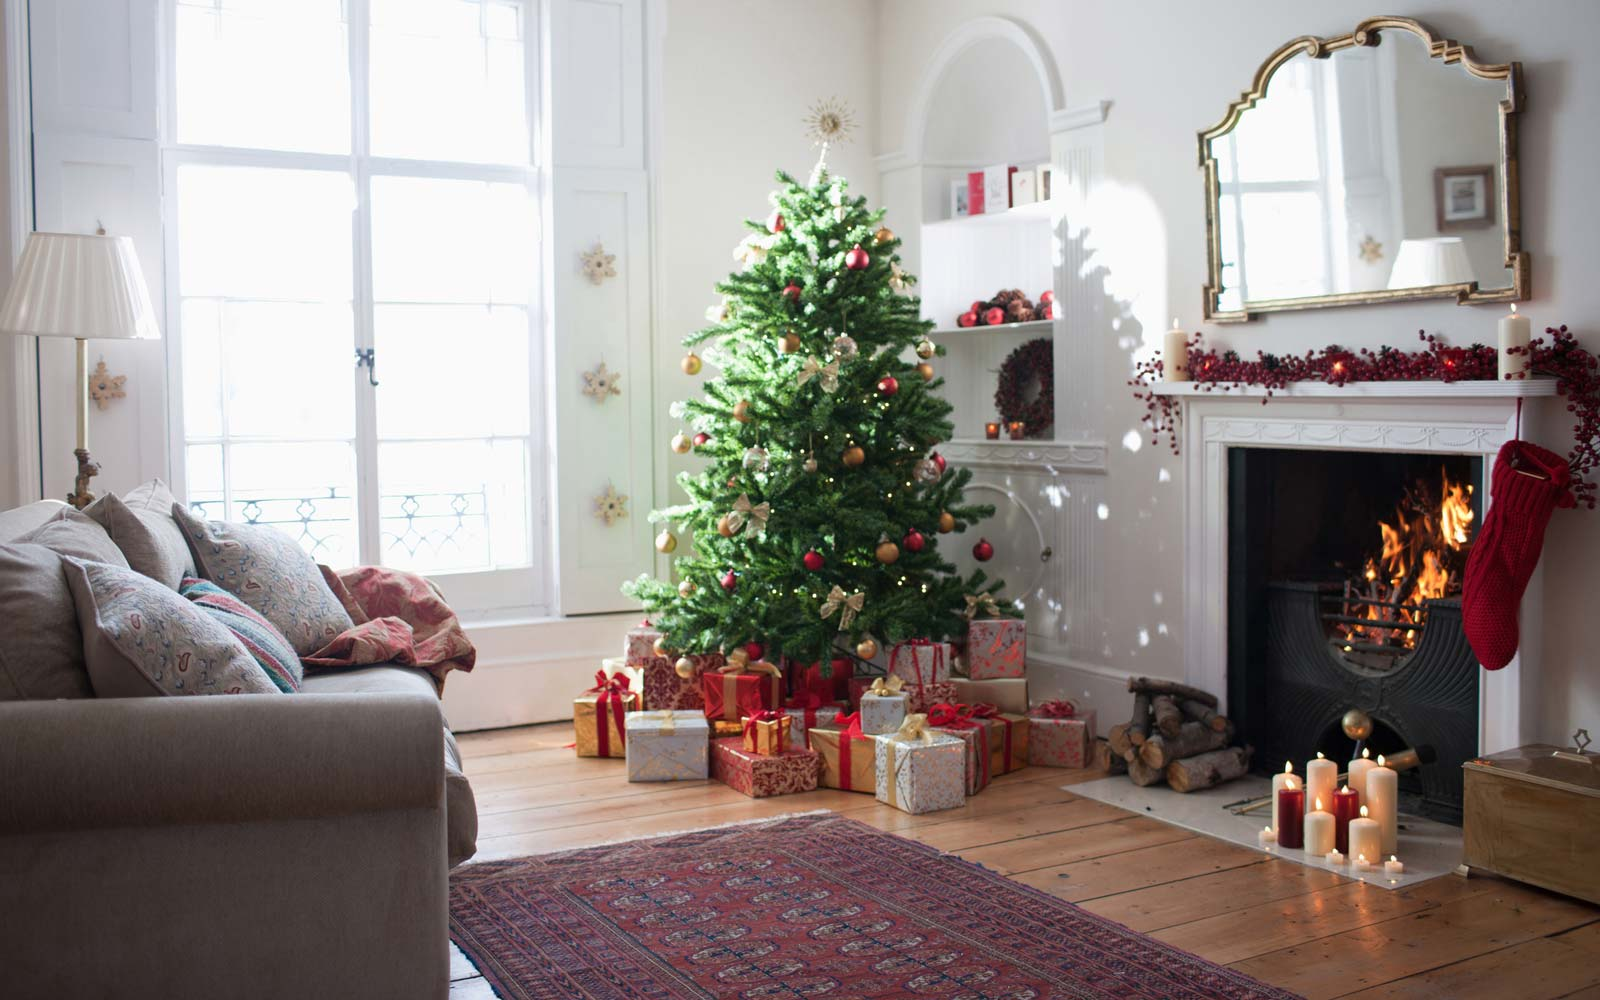 7 Tips to Make Your Christmas Tree Last As Long As Possible